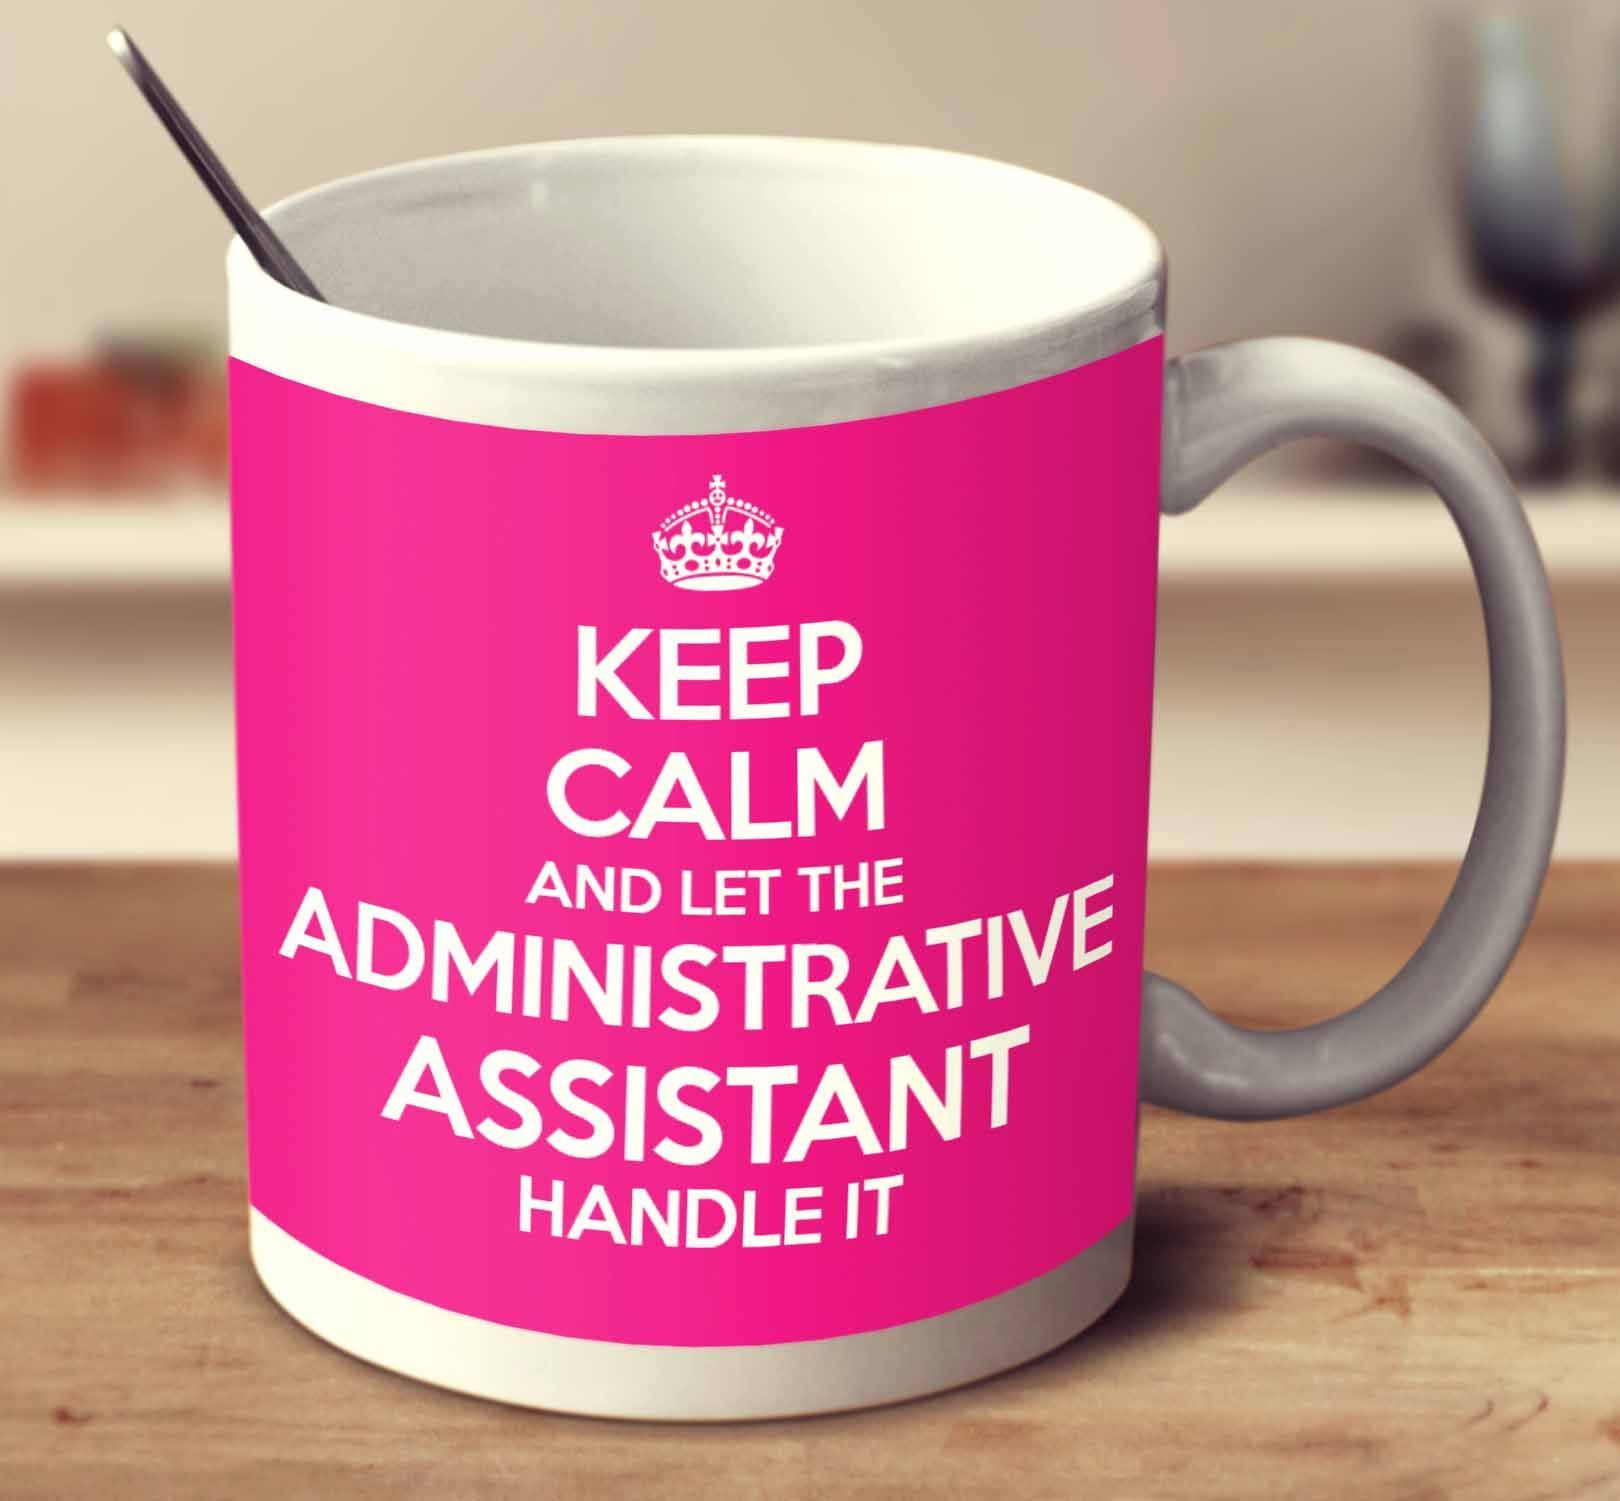 Resume For Administrative Assistant%0A Keep Calm And Let The Administrative Assistant Handle It